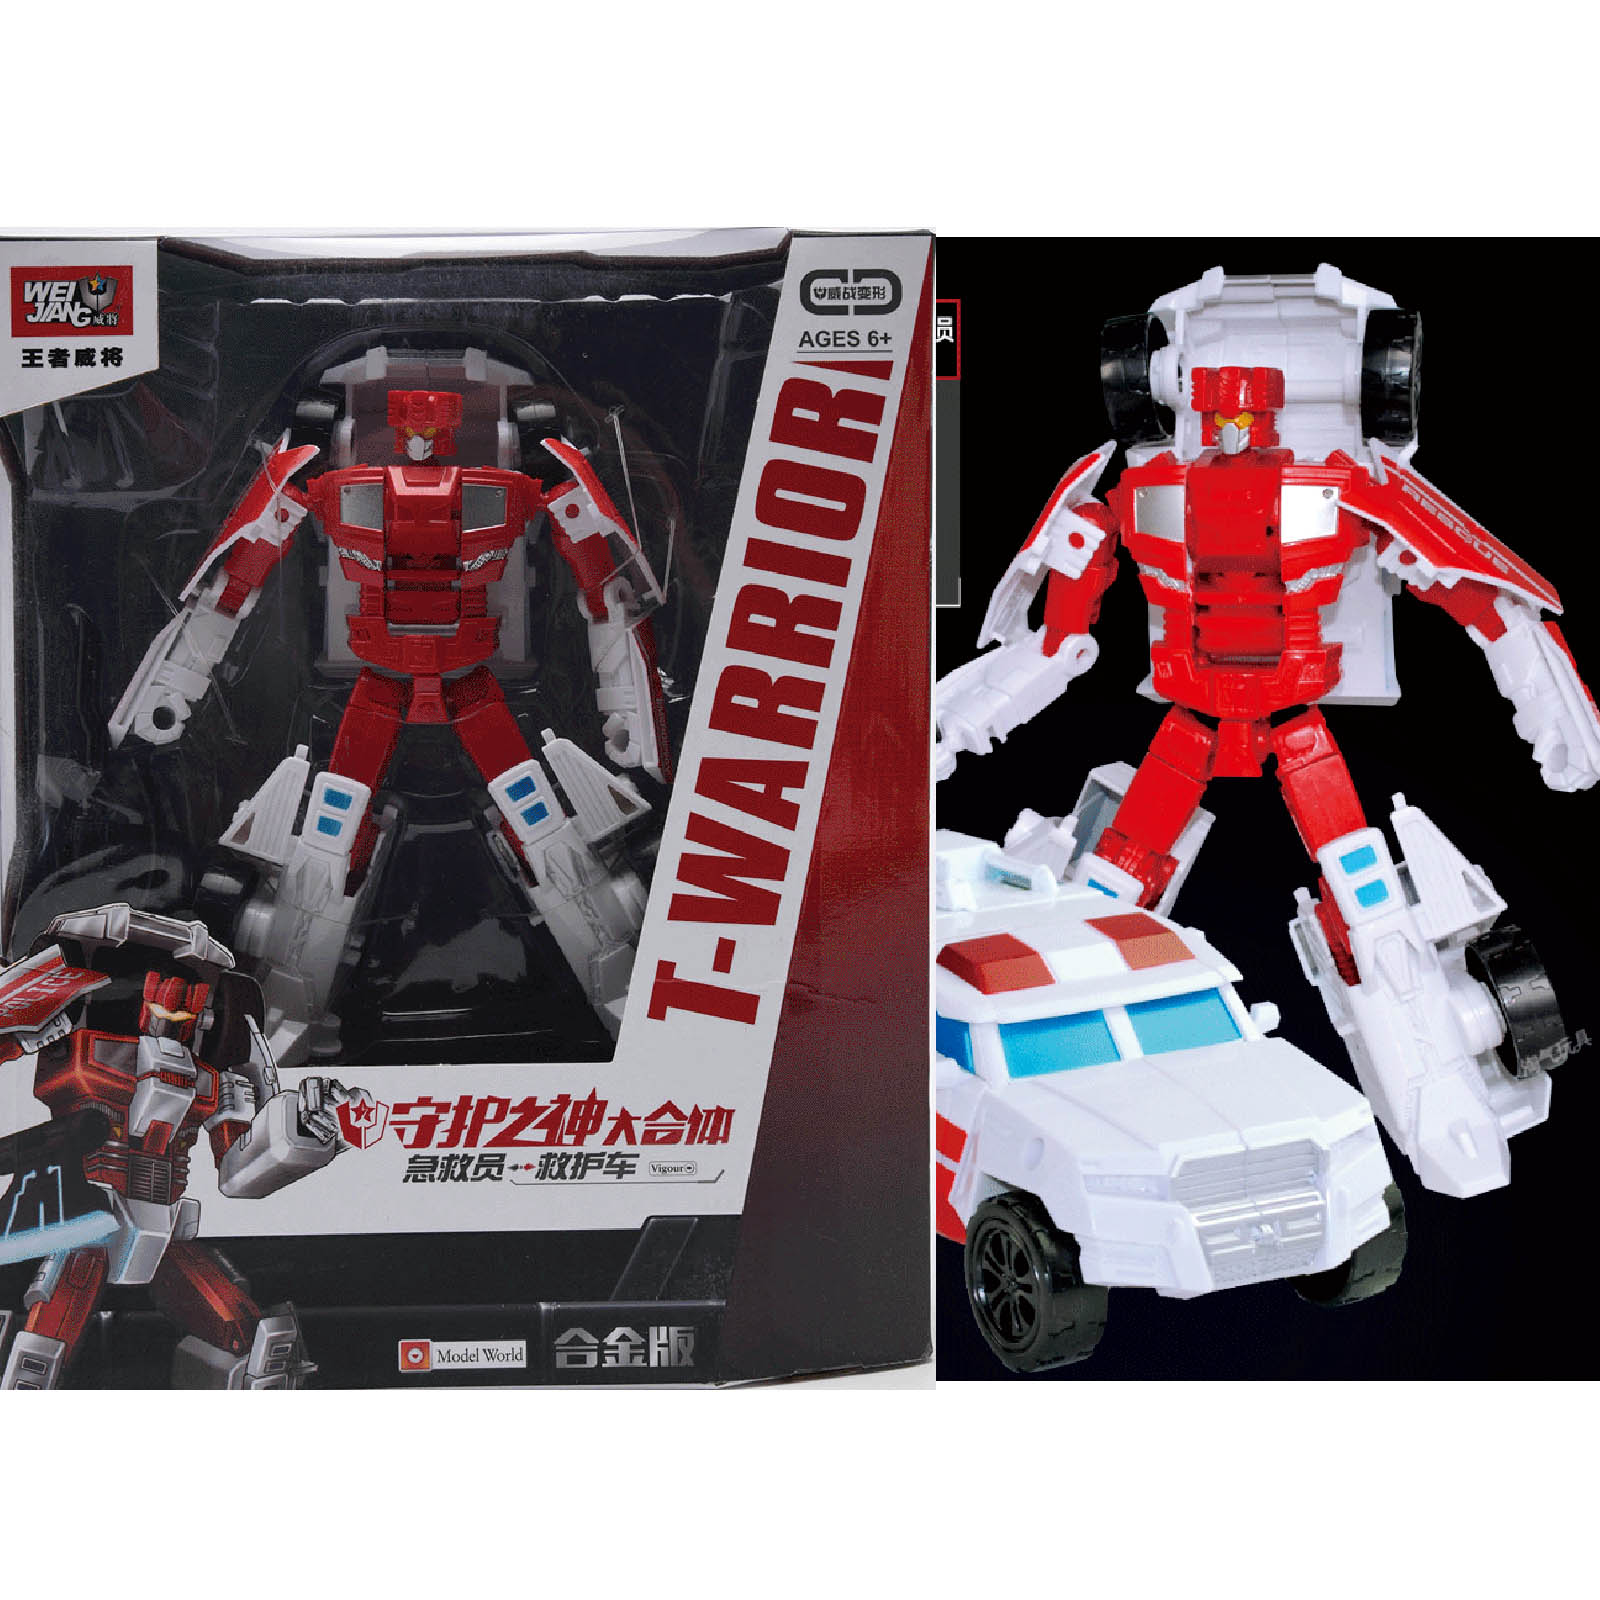 Transformers LUBO WJ T-Warrior FIRST AID Ambulance Robots Christmas Gift Toy